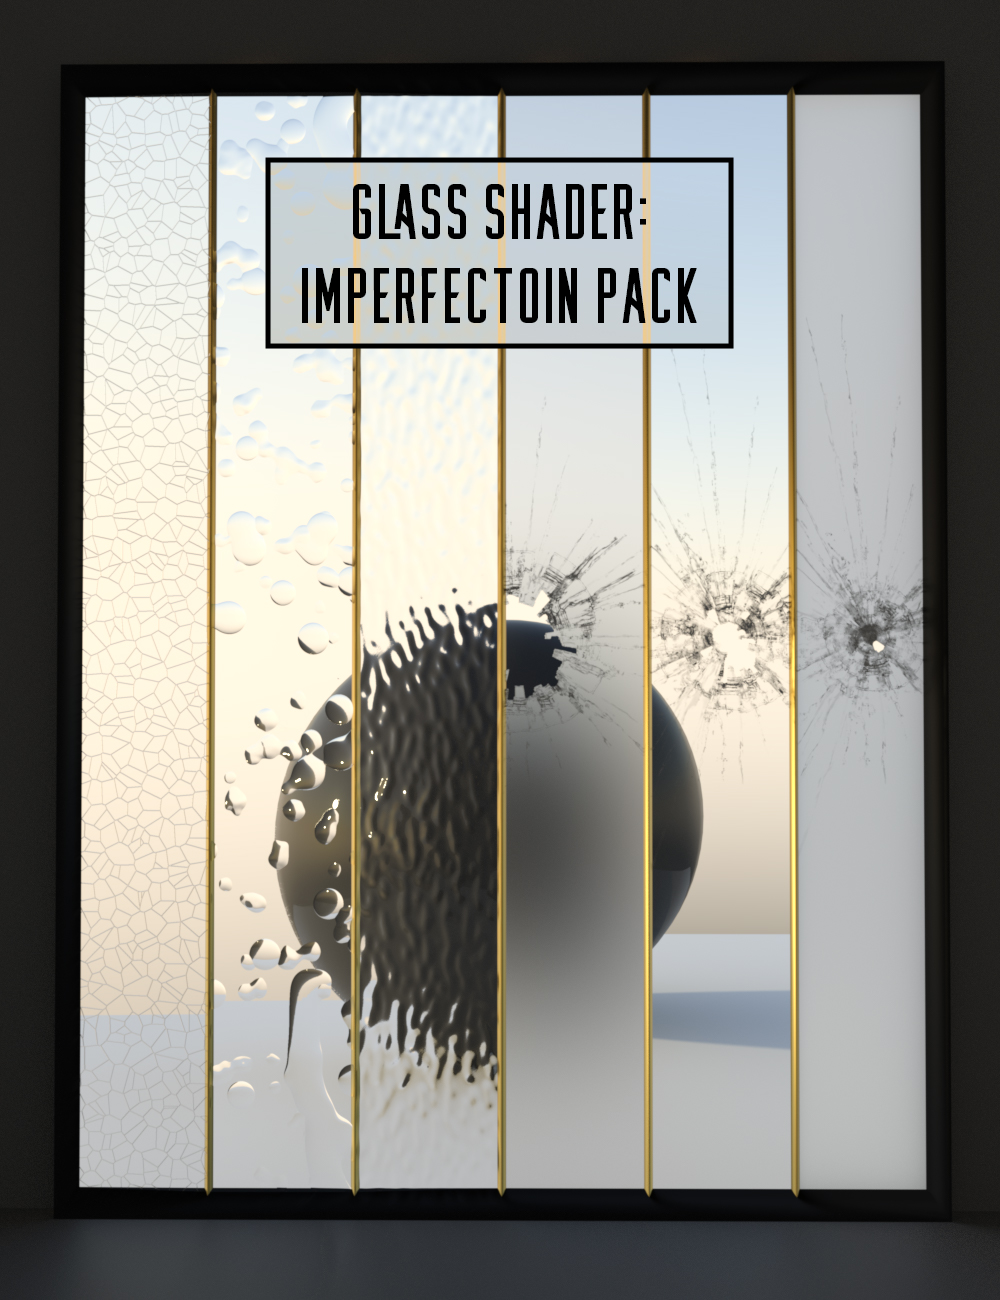 Glass Shader Imperfection Pack by: Censored, 3D Models by Daz 3D